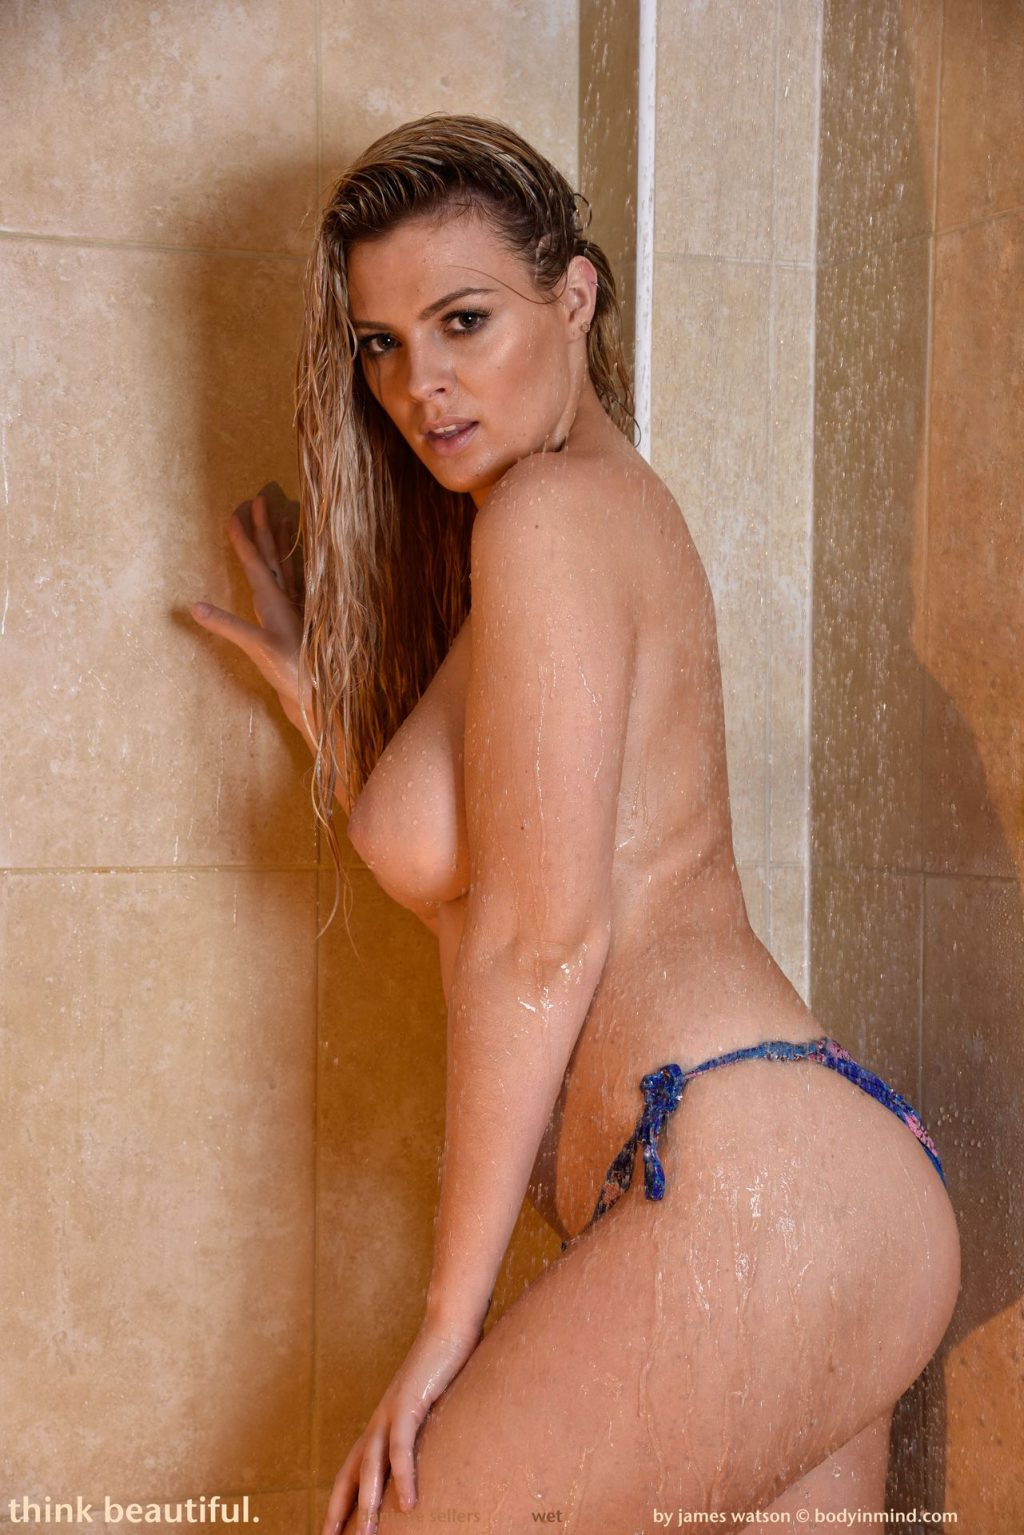 Danielle Sellers Shows Off Her Nude Wet Body (46 Photos)